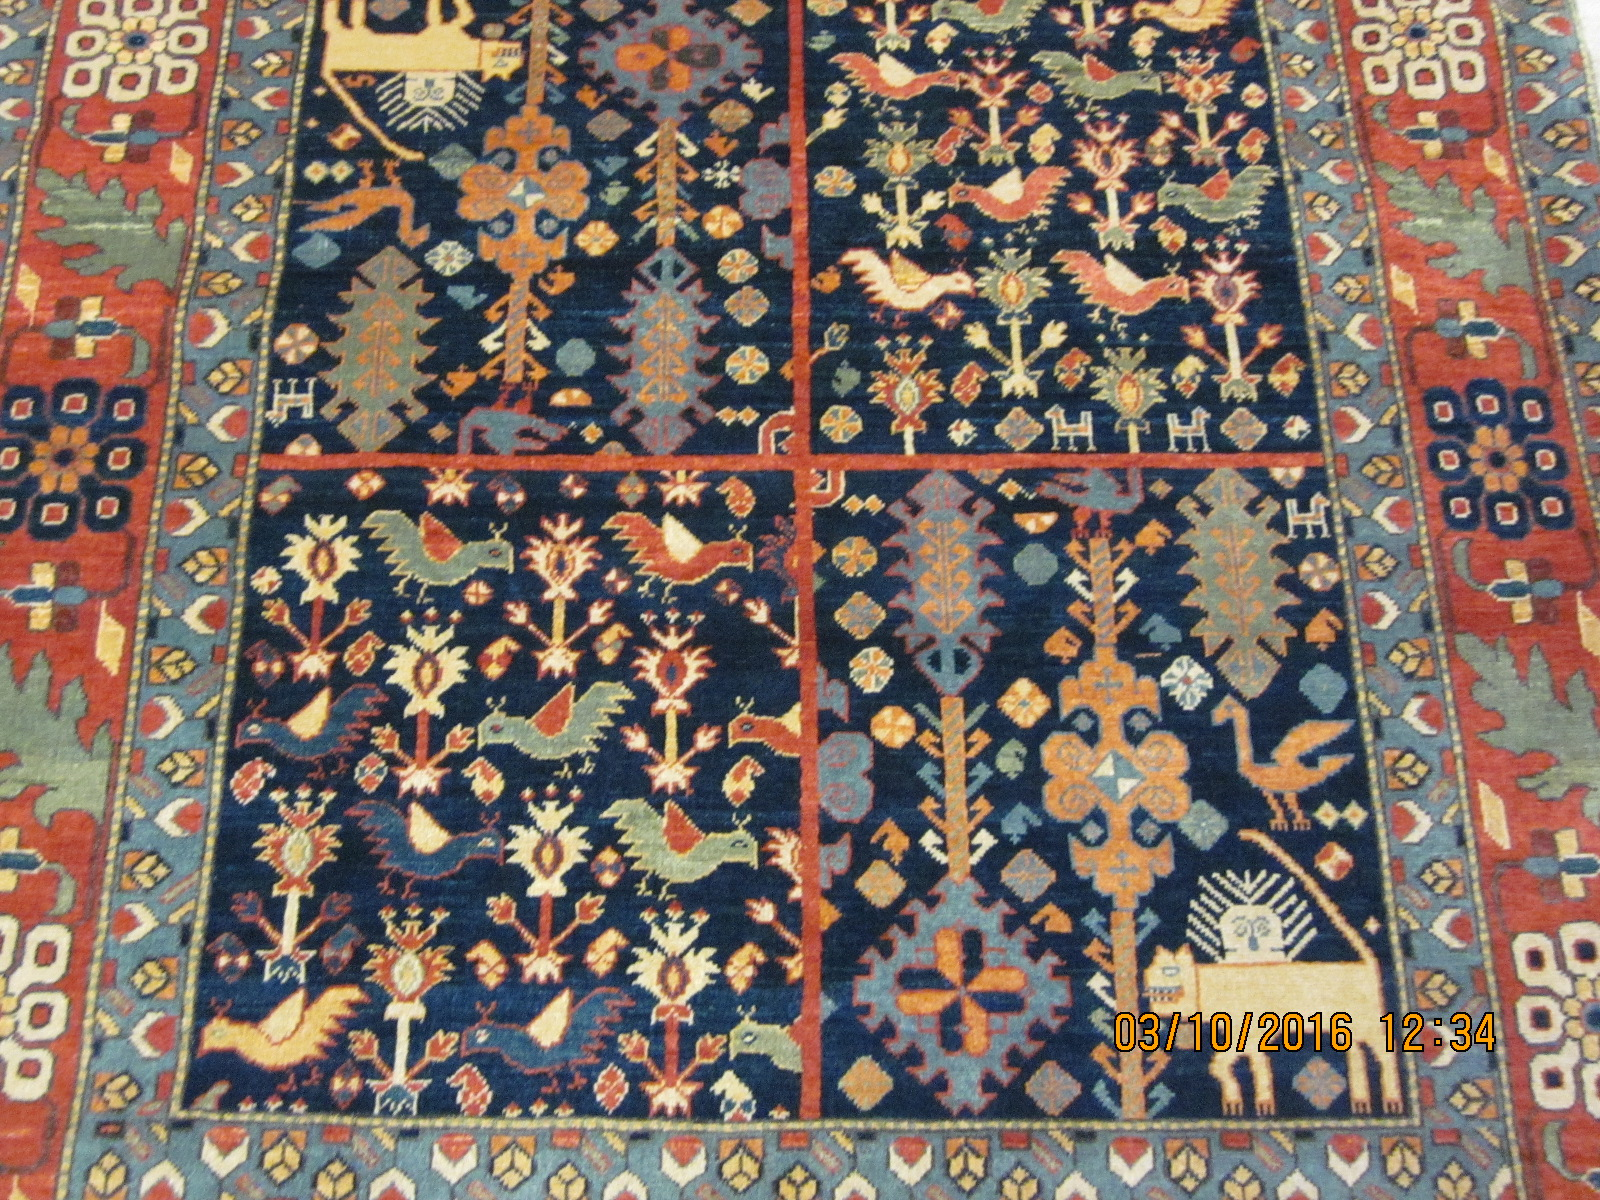 Video Of Afghan Rugs In Persian Tribal Designs Here S A Clue The First Three Photos Are Small Piece Qashqai Design